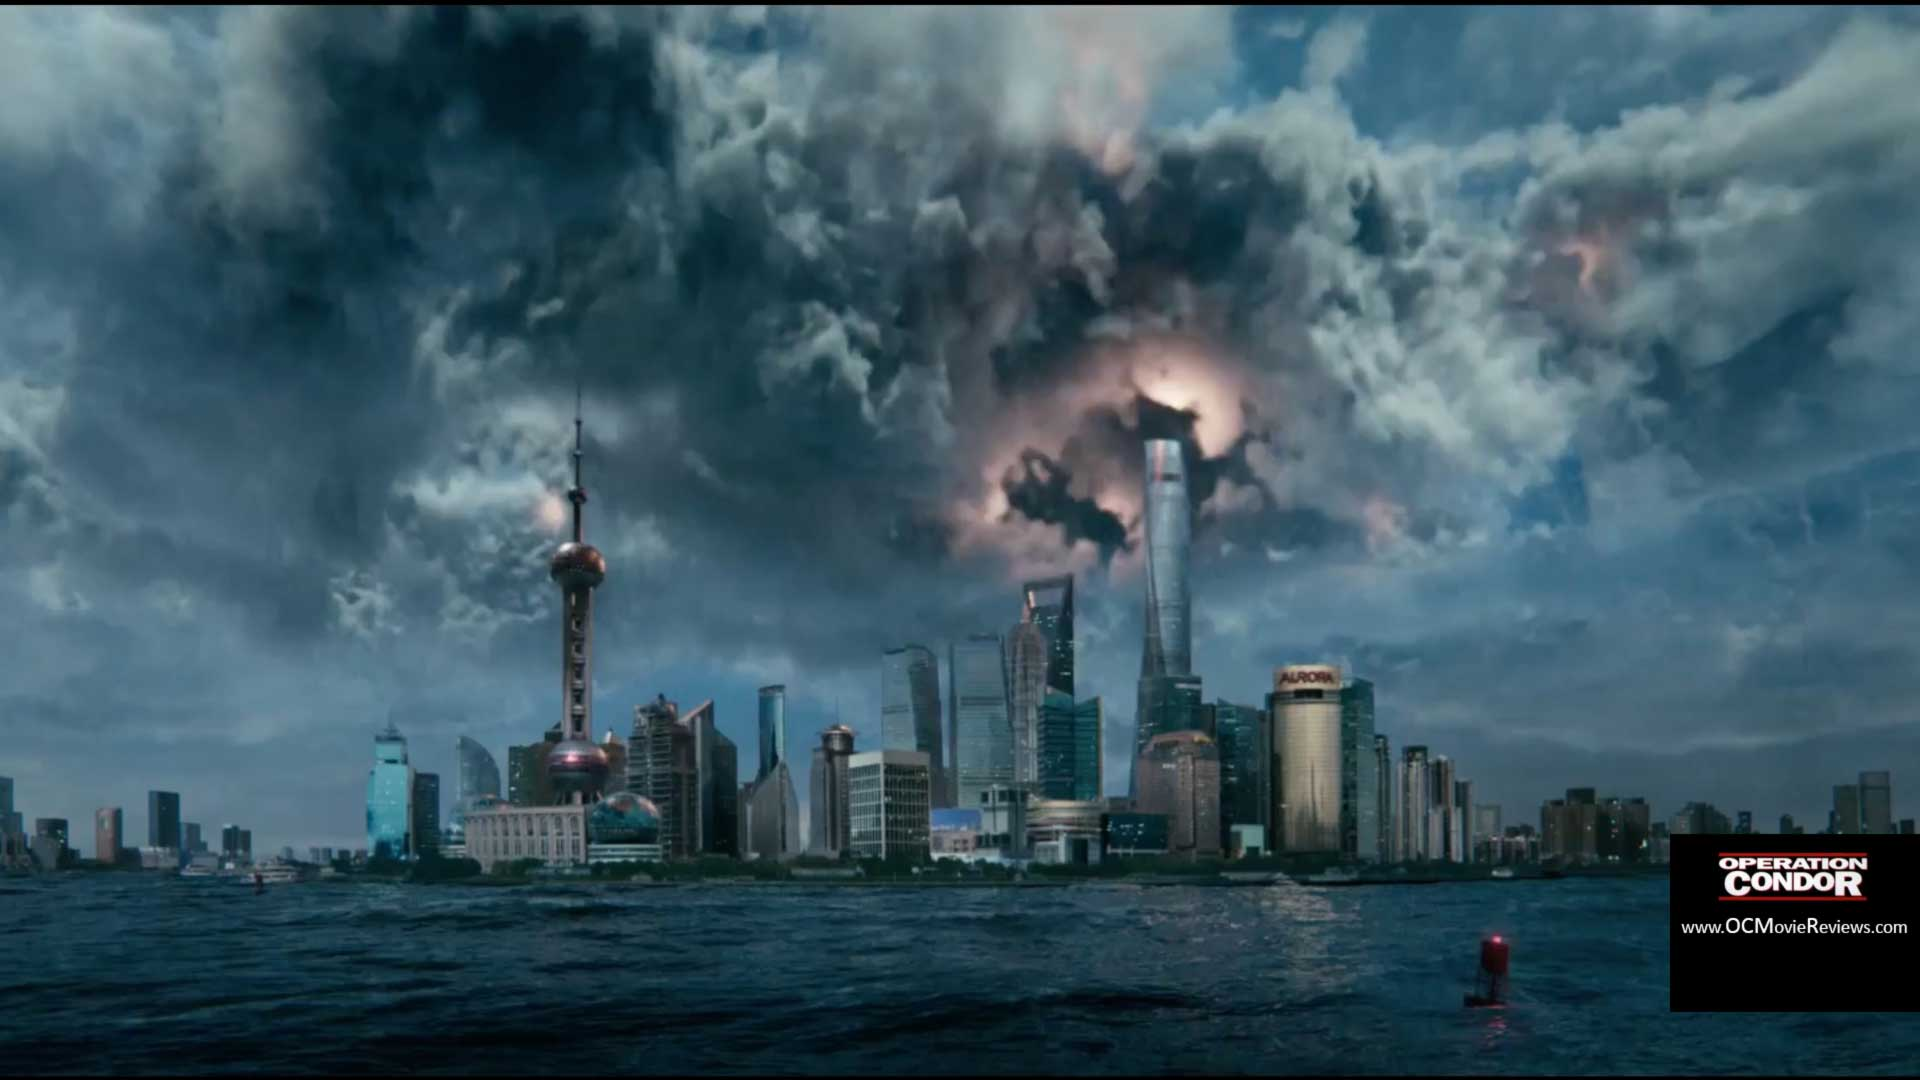 Geostorm Review – It's A Cold Night In The Cinema - OC Movie Reviews - Movie Reviews, Movie News, Documentary Reviews, Short Films, Short Film Reviews, Trailers, Movie Trailers, Interviews, film reviews, film news, hollywood, indie films, documentaries